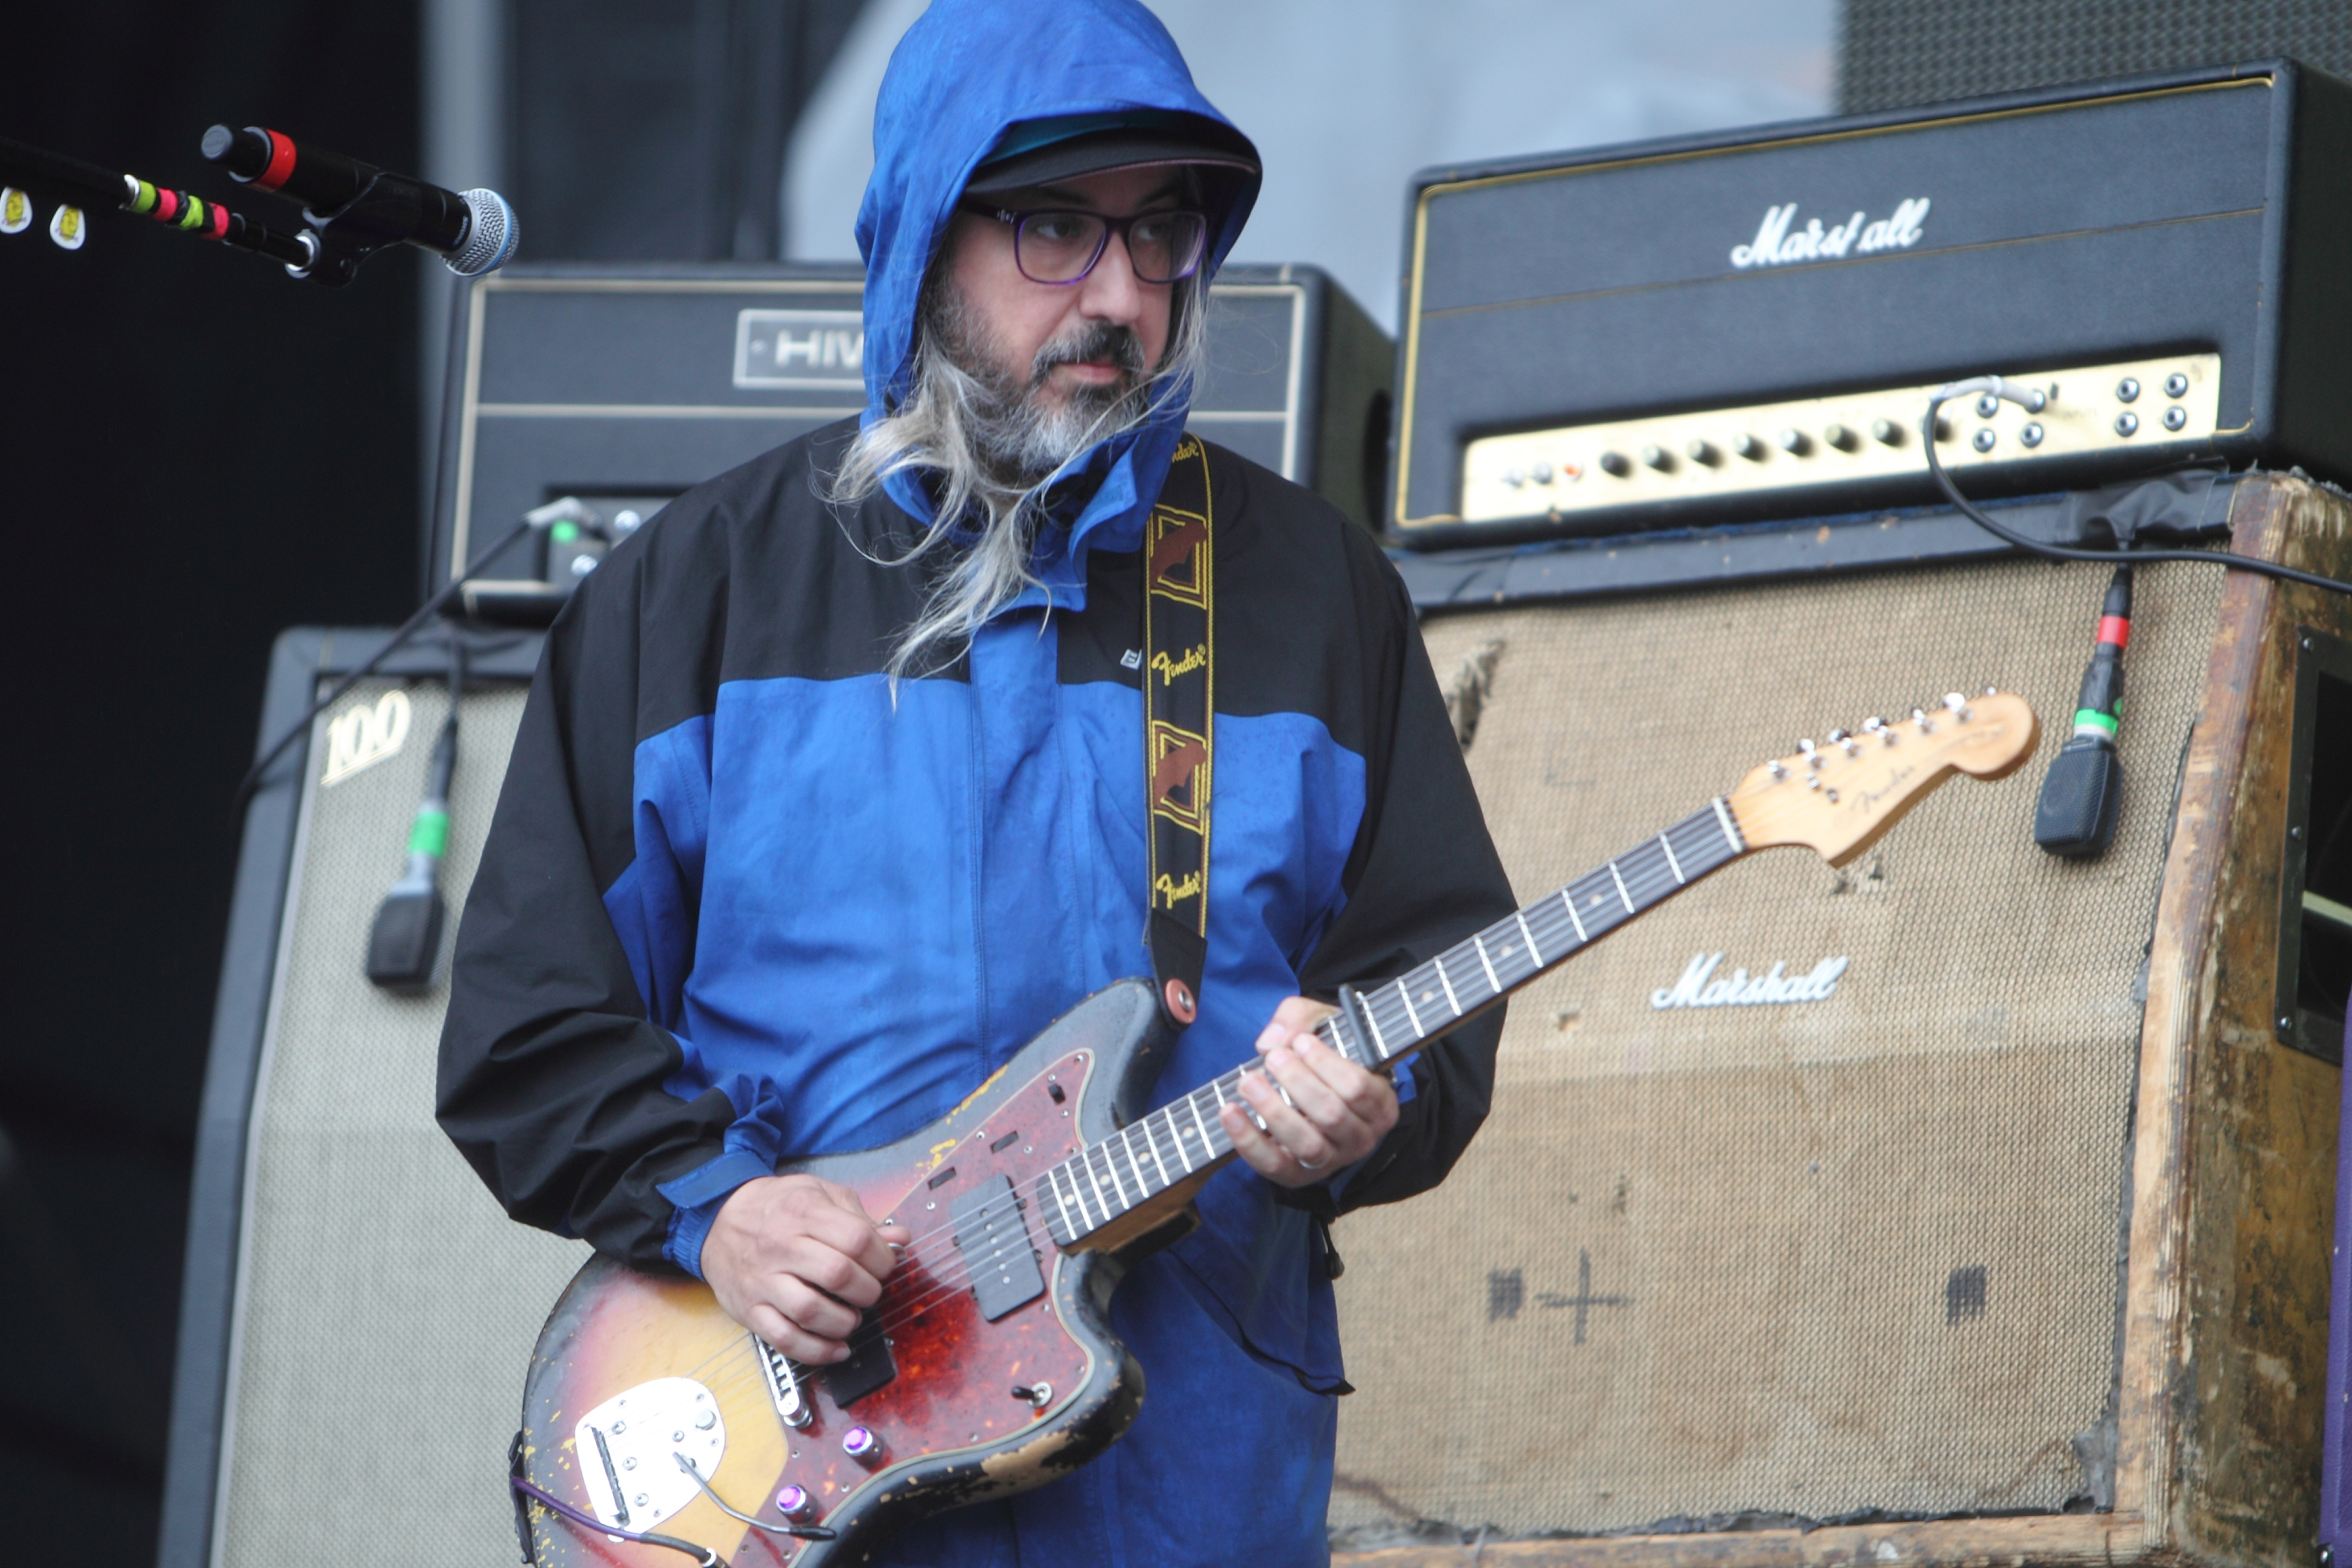 NEW YORK, NY - JUNE 07: J Mascis of Dinosaur Jr. performs on stage on Day 1 of The Governors Ball Music Festival at Randall's